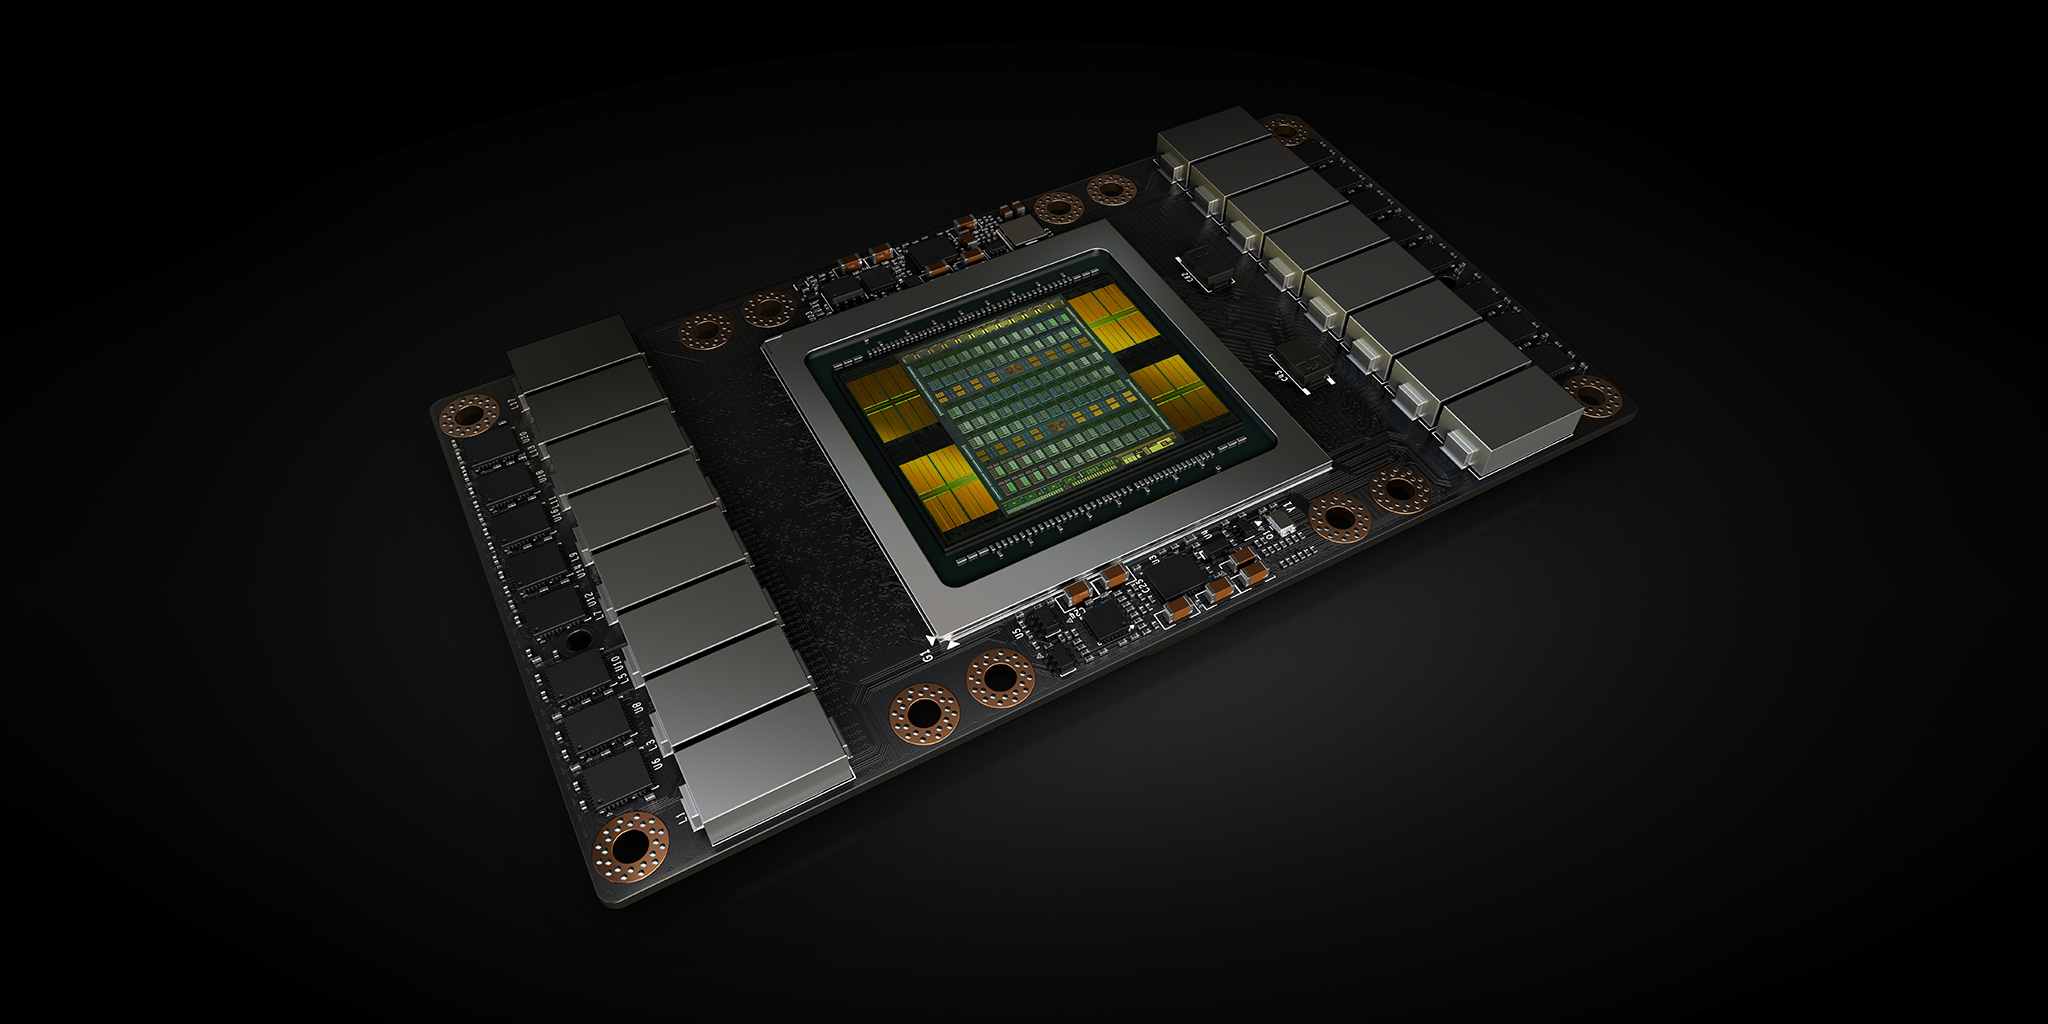 Https 2017 09 22 Tbh App 2018 07 02t225637z Or Photo Of Circuit Board Skinned Human Close Up And Binary Code Nvidia Volta Render Black